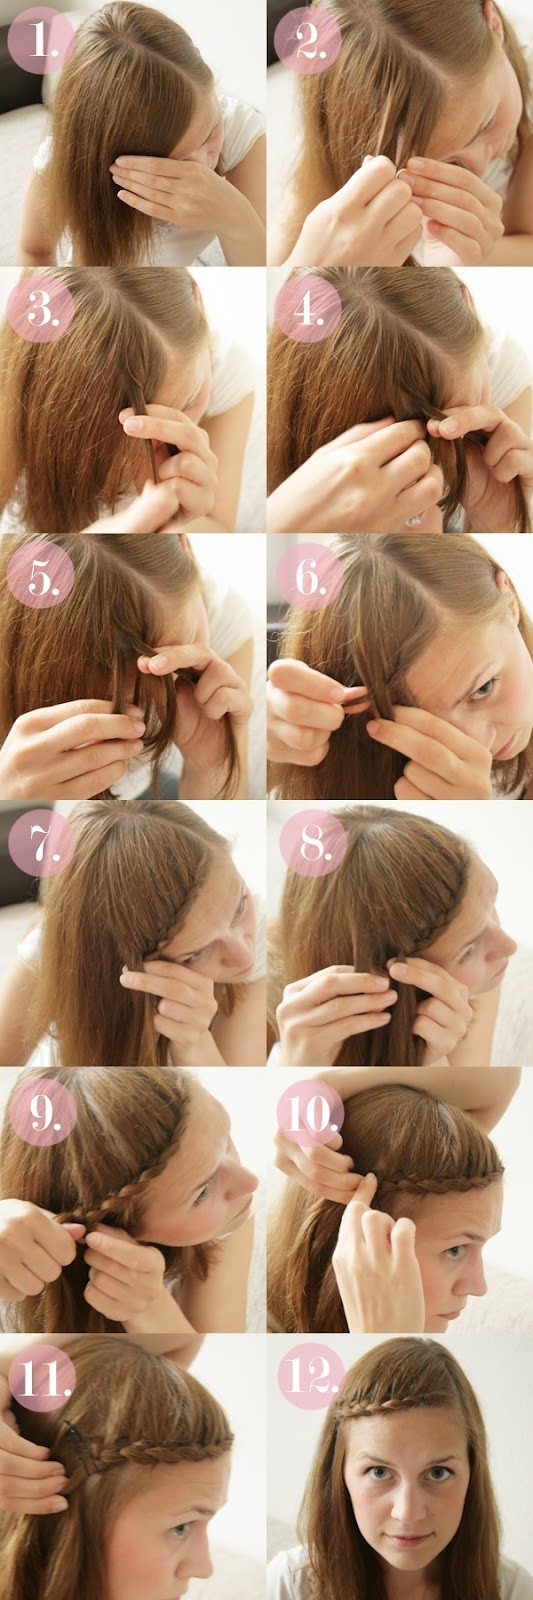 Stupendous 15 Braided Bangs Tutorials Cute Easy Hairstyles Pretty Designs Hairstyle Inspiration Daily Dogsangcom